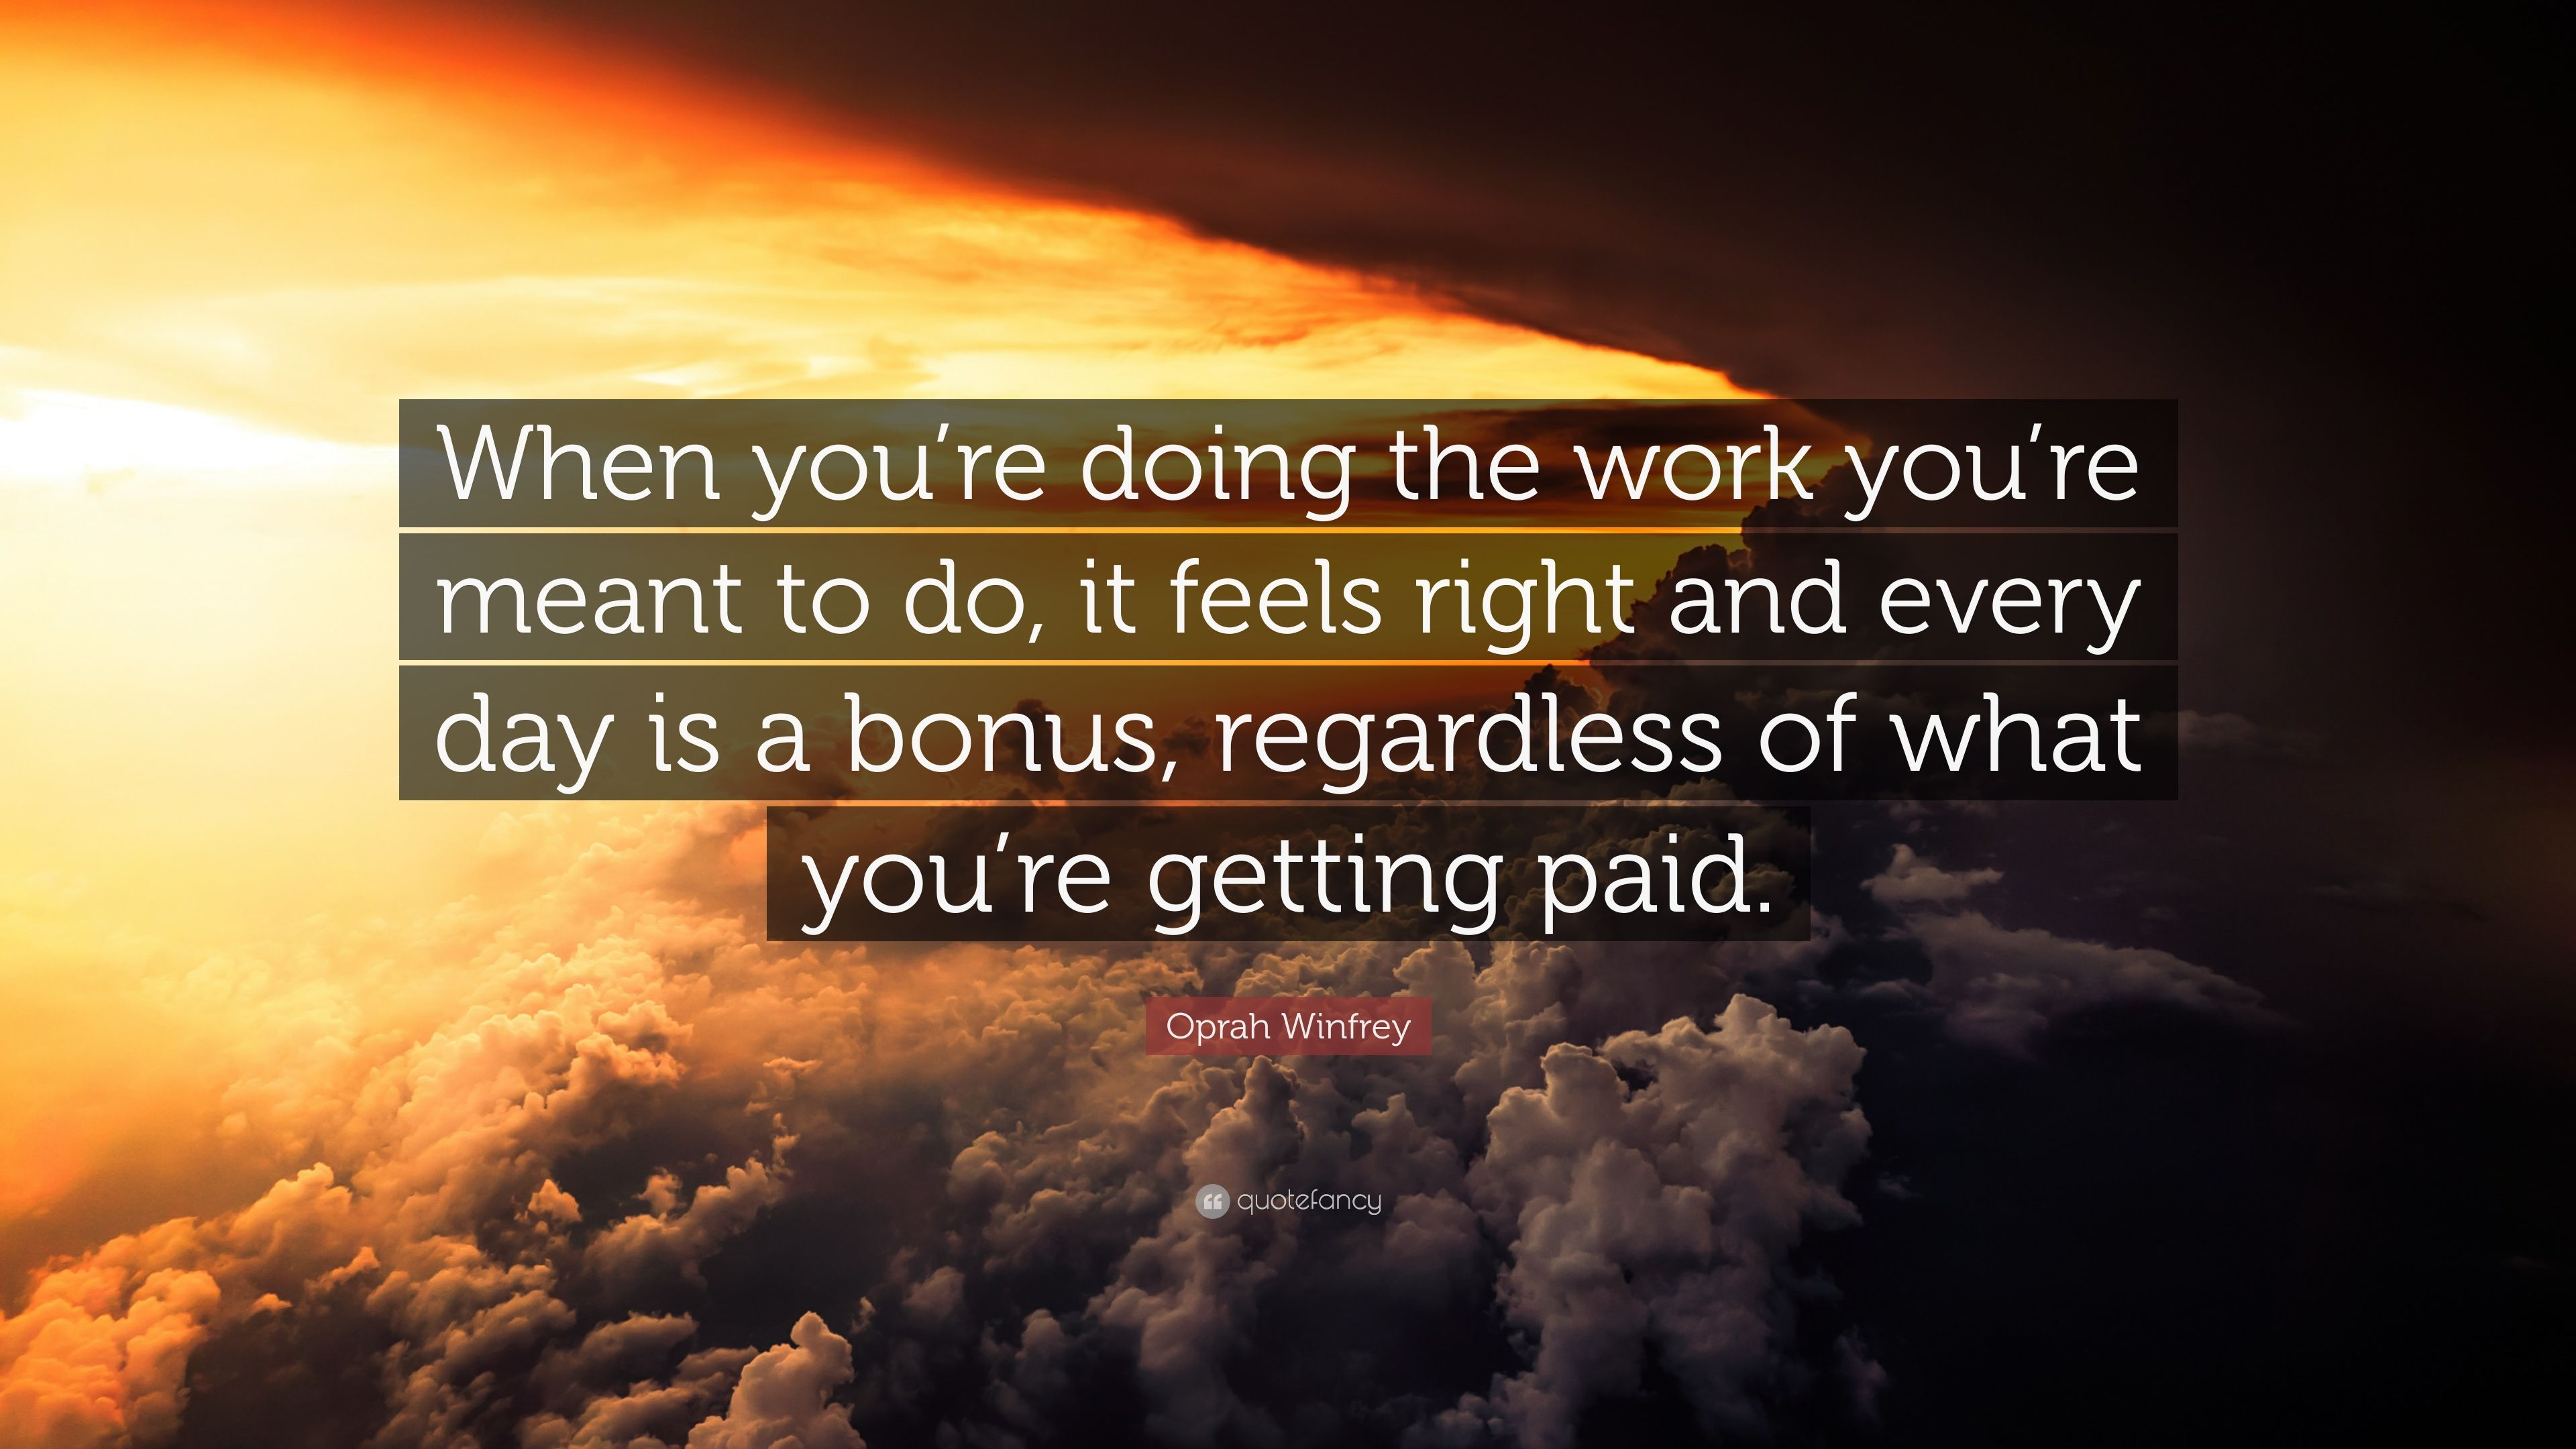 Oprah Winfrey Quote When Youre Doing The Work Youre Meant To Do